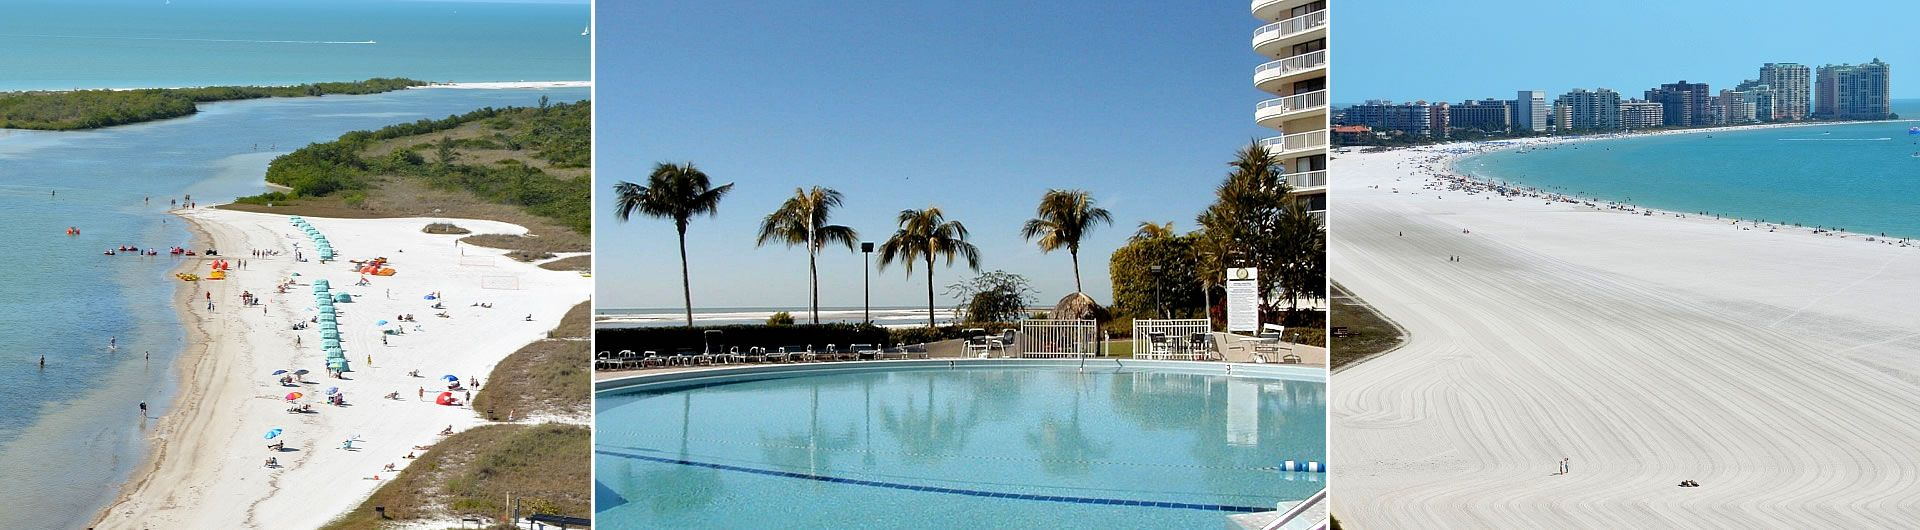 Marco Island beach and Towers pool